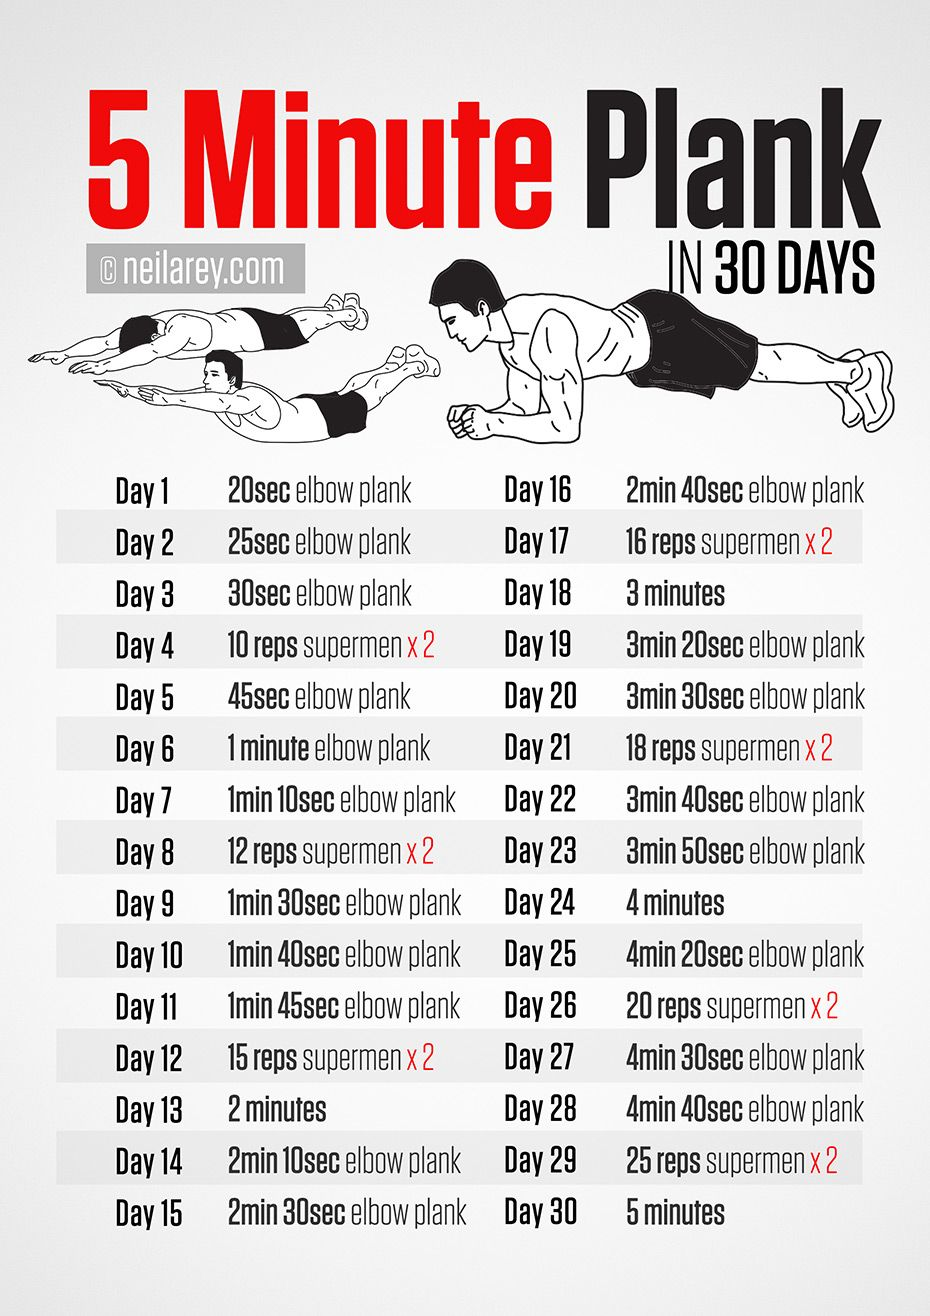 5 Minute Plank 30 days Challenge! | Health and Fitness ...